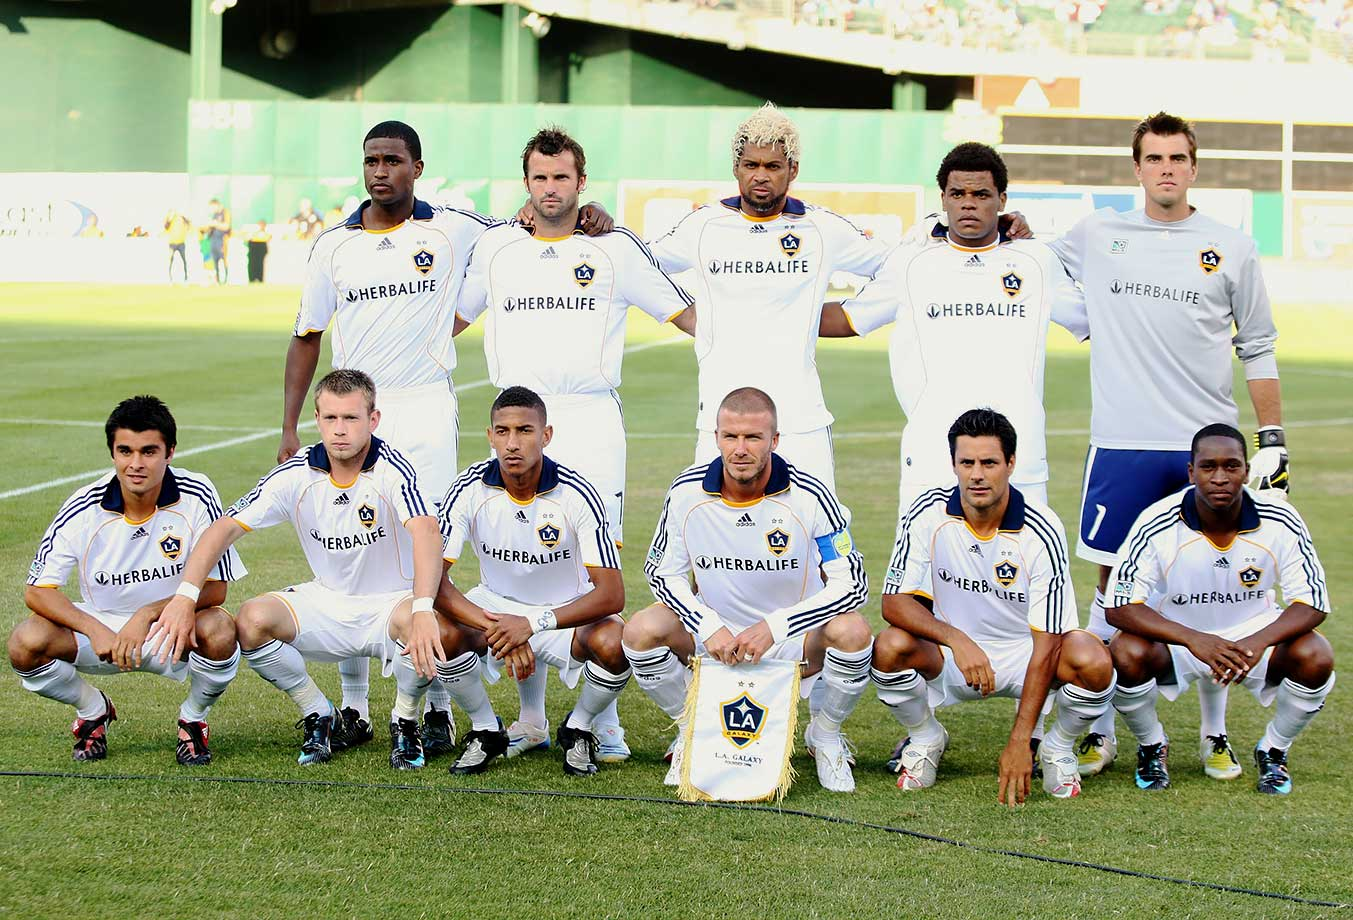 By mid-2008, as the team struggled, rumors began to surface about growing distance between Beckham and his teammates. More, questions arose about Beckham's effectiveness as team captain. The Galaxy failed to qualify for the playoffs that season.